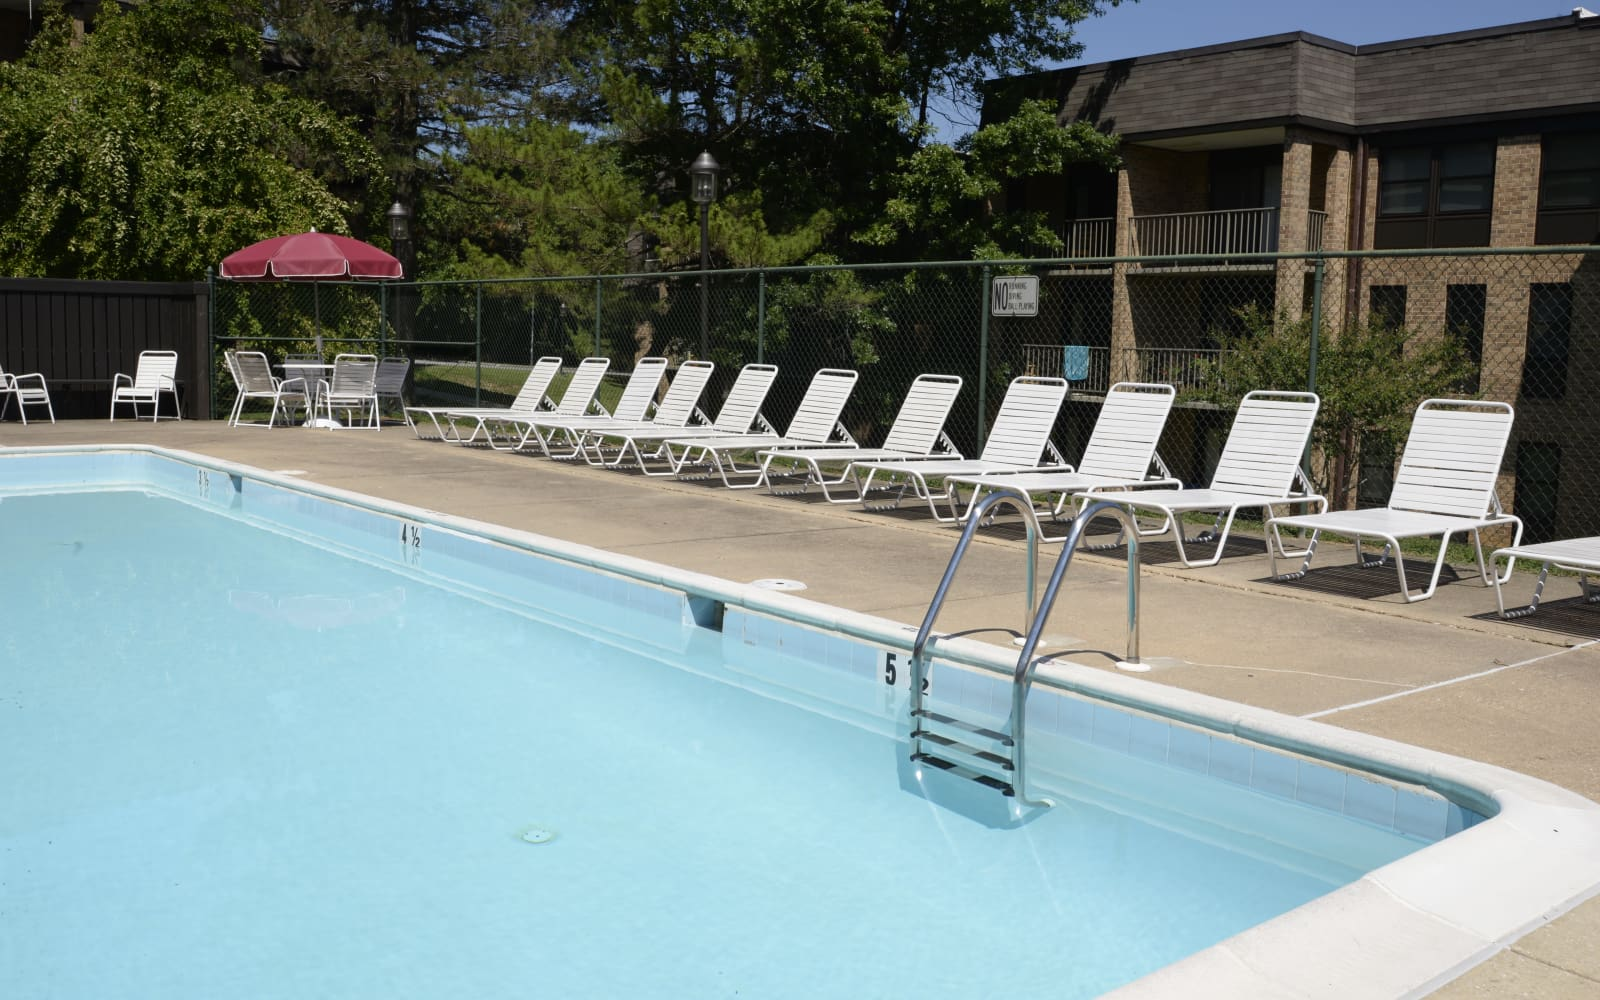 Swimming pool and chairs at Charlesgate Apartments in Towson, Maryland